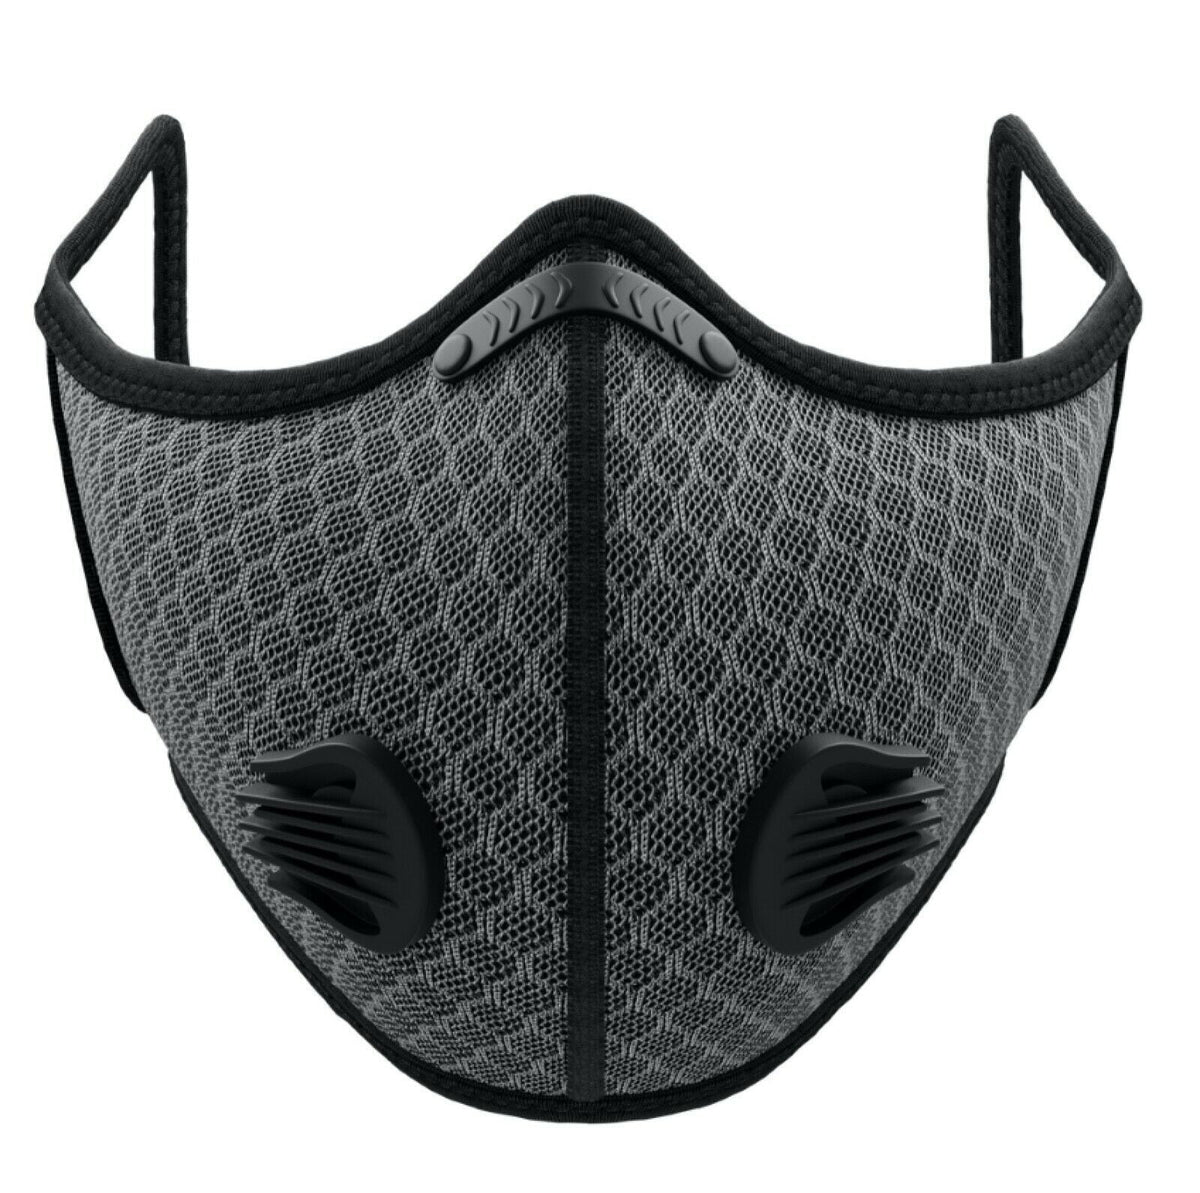 Sports Mask Air Purifying Filtered Mask - MaskJunkee